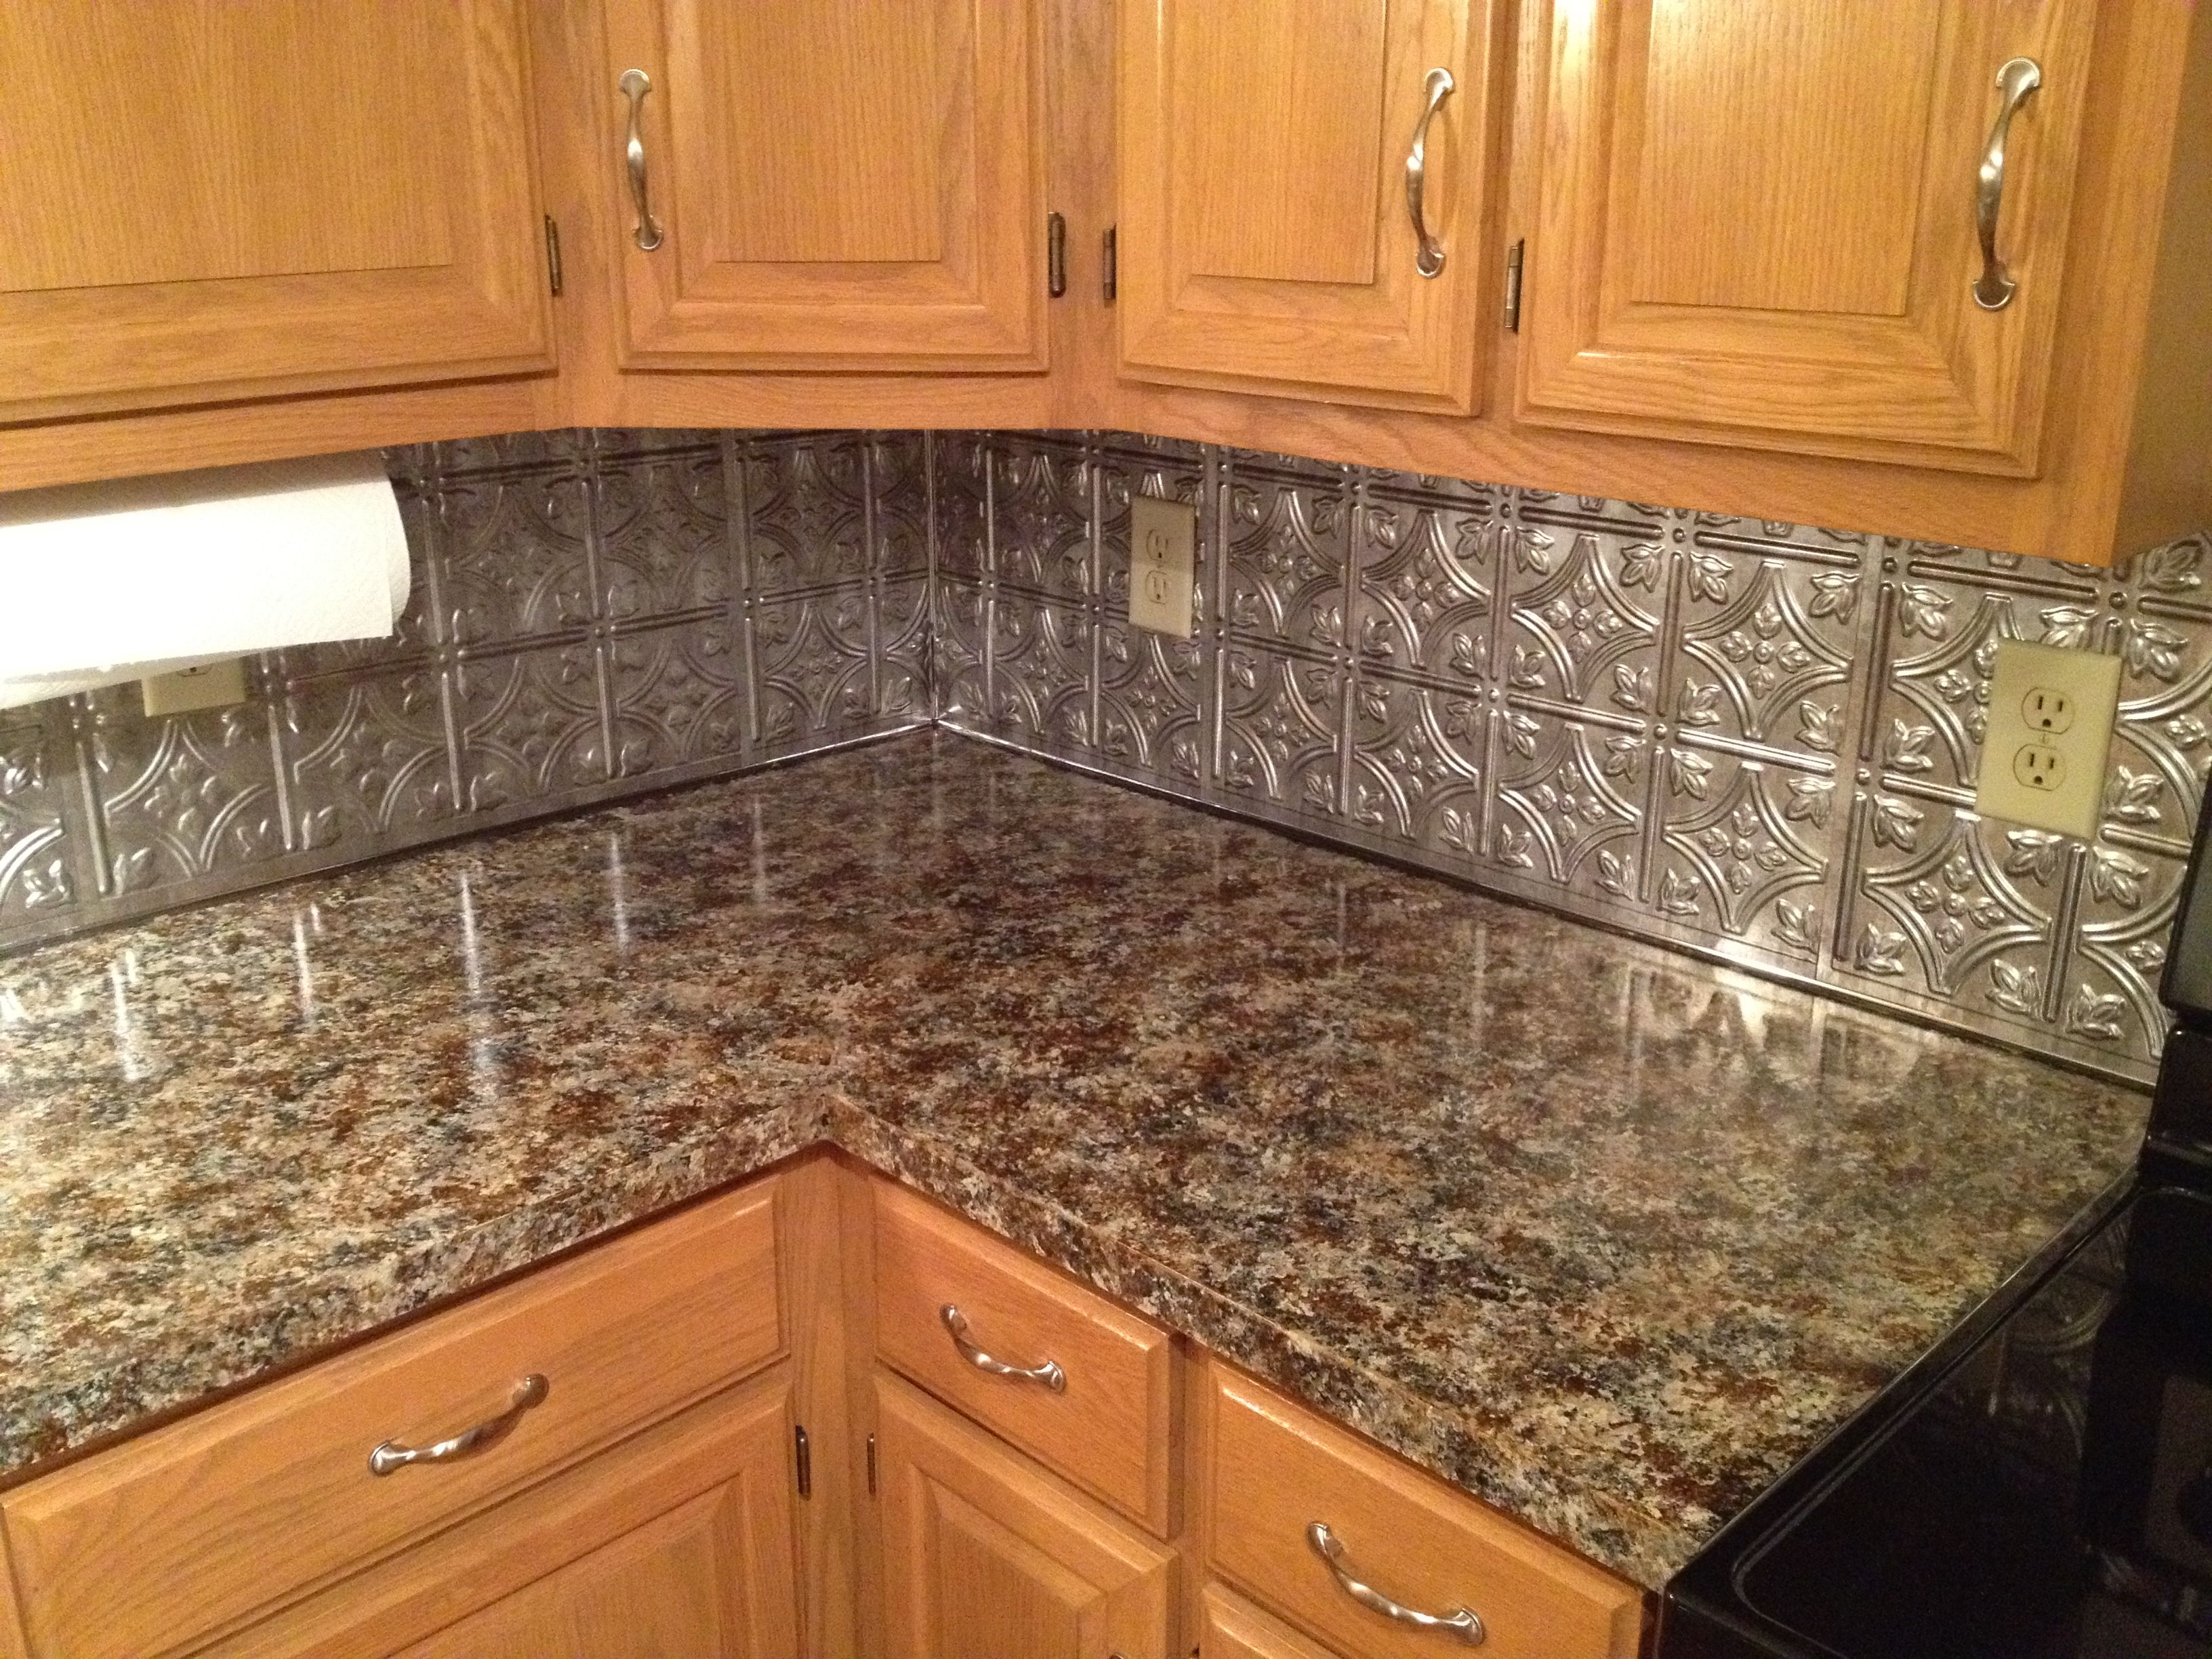 Kitchen counter topback splash make over for under 300